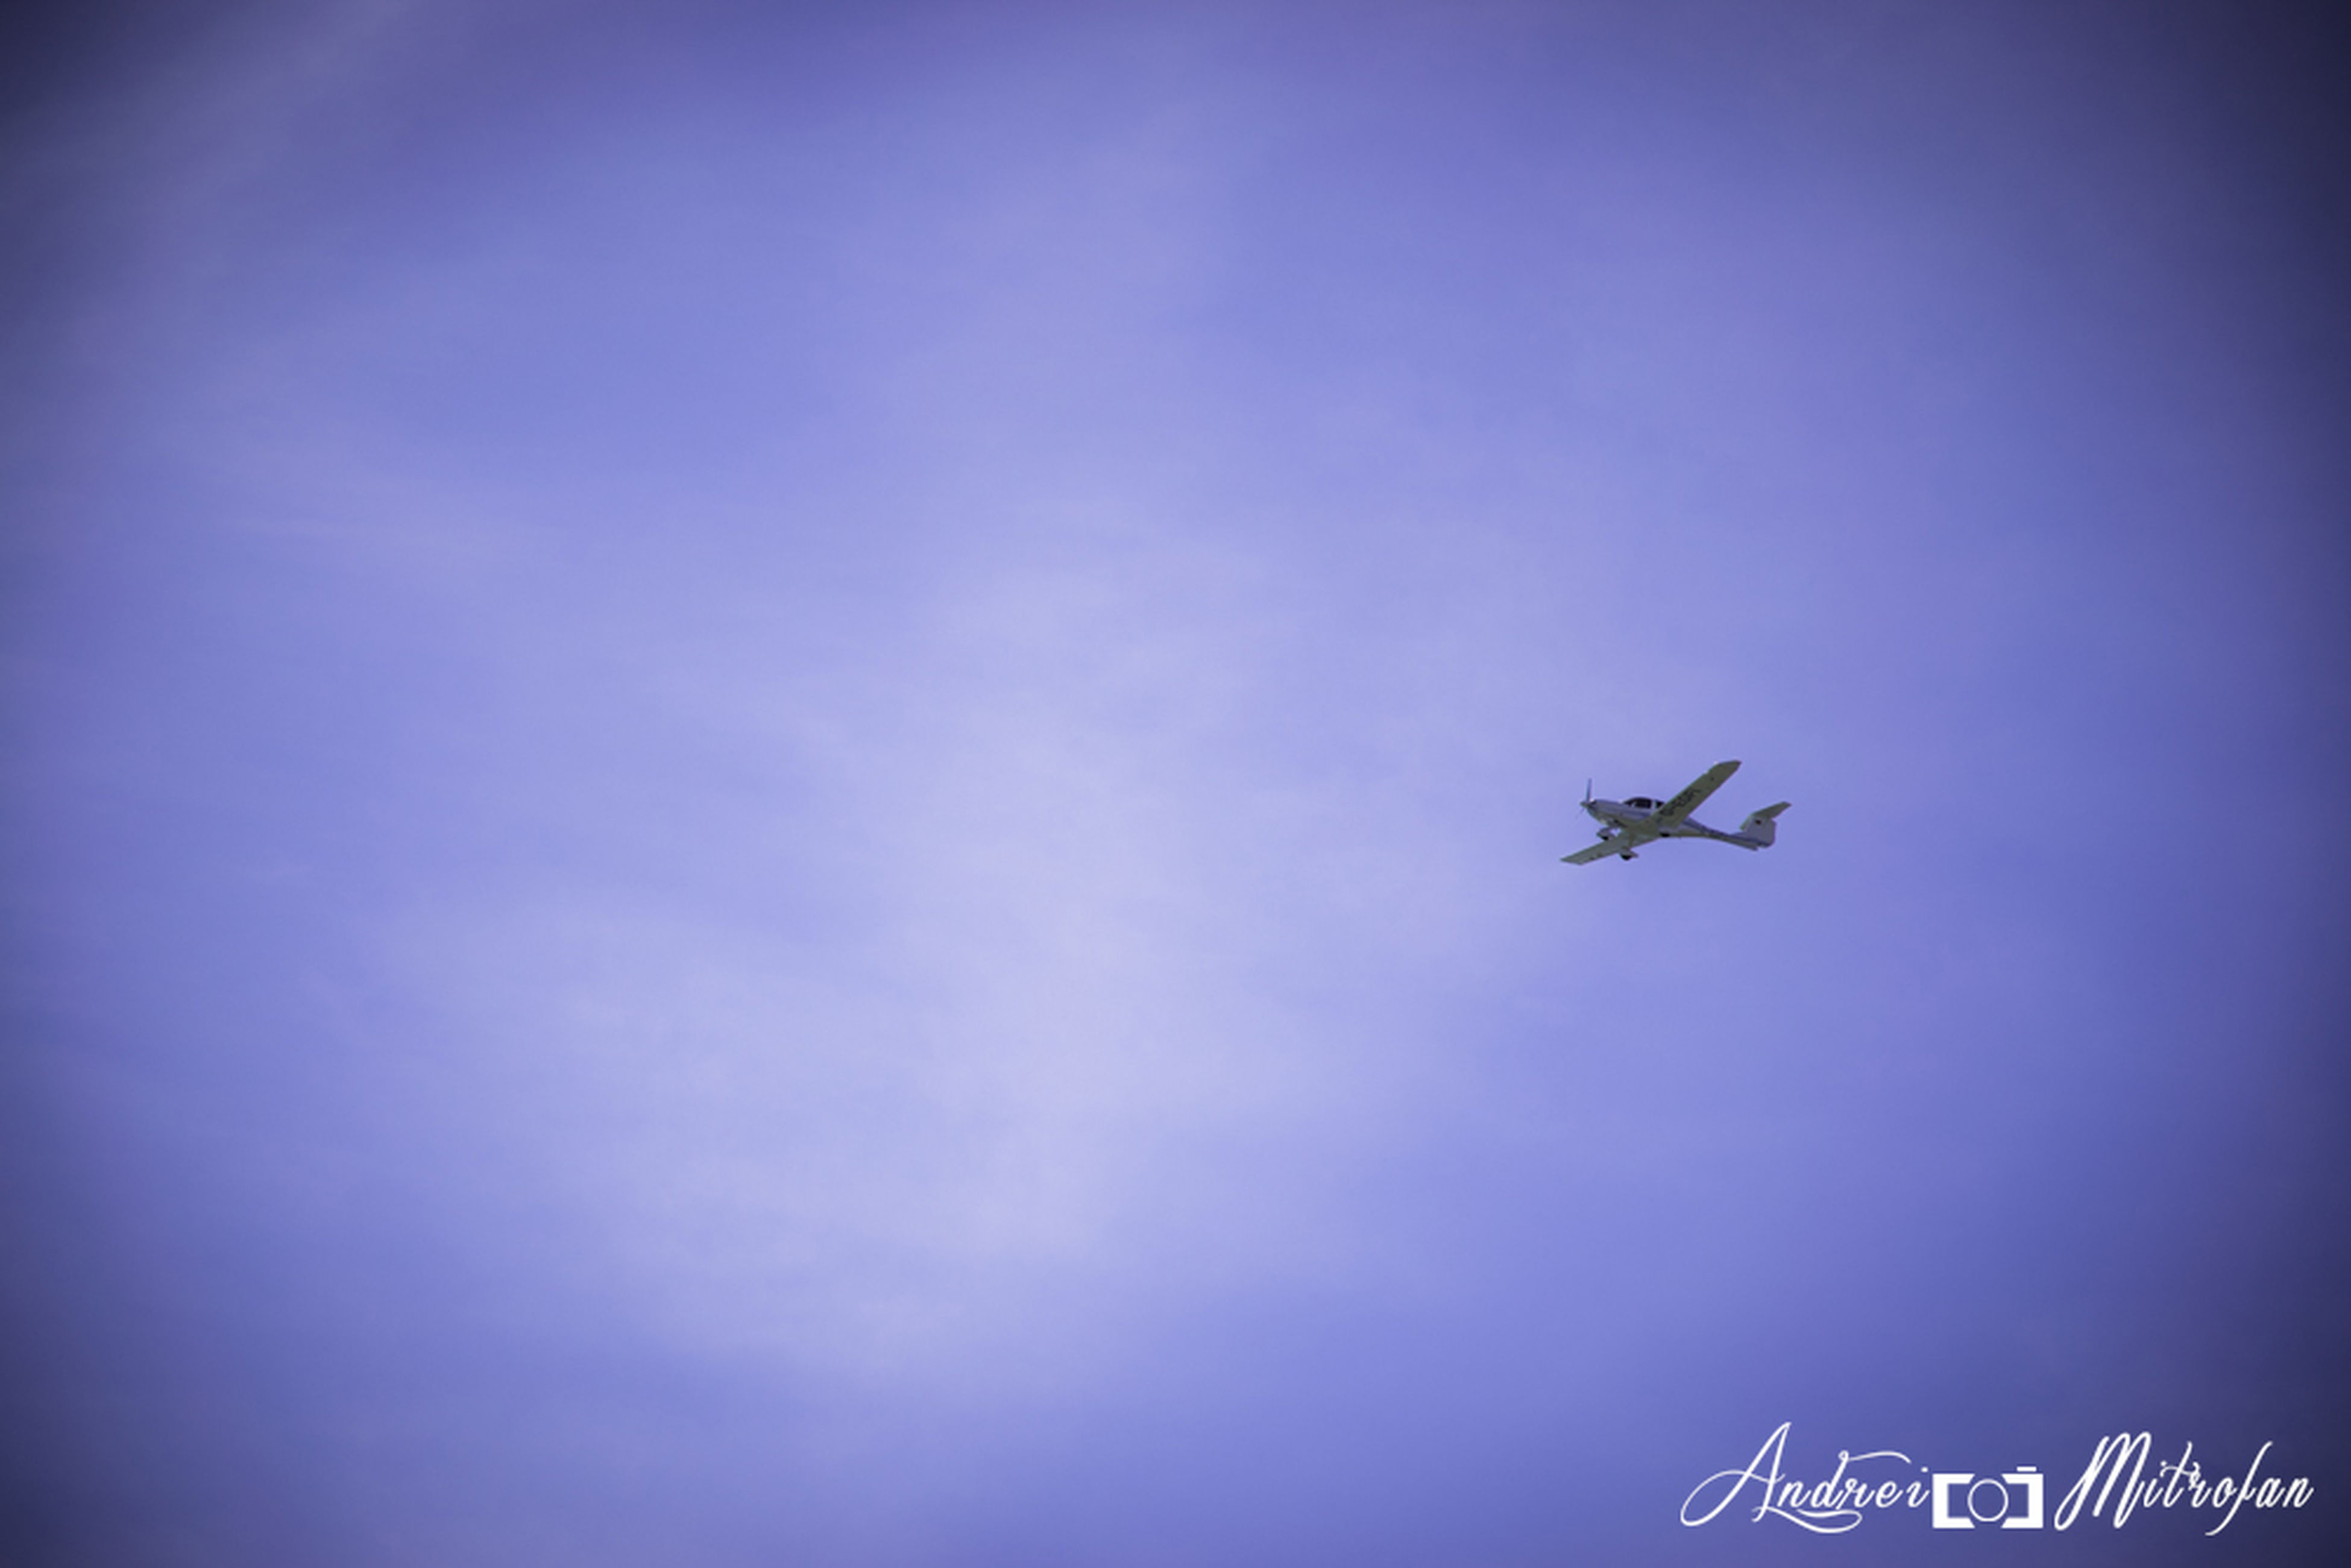 transportation, air vehicle, mode of transport, airplane, flying, low angle view, mid-air, blue, on the move, sky, travel, journey, copy space, outdoors, silhouette, day, no people, speed, nature, public transportation